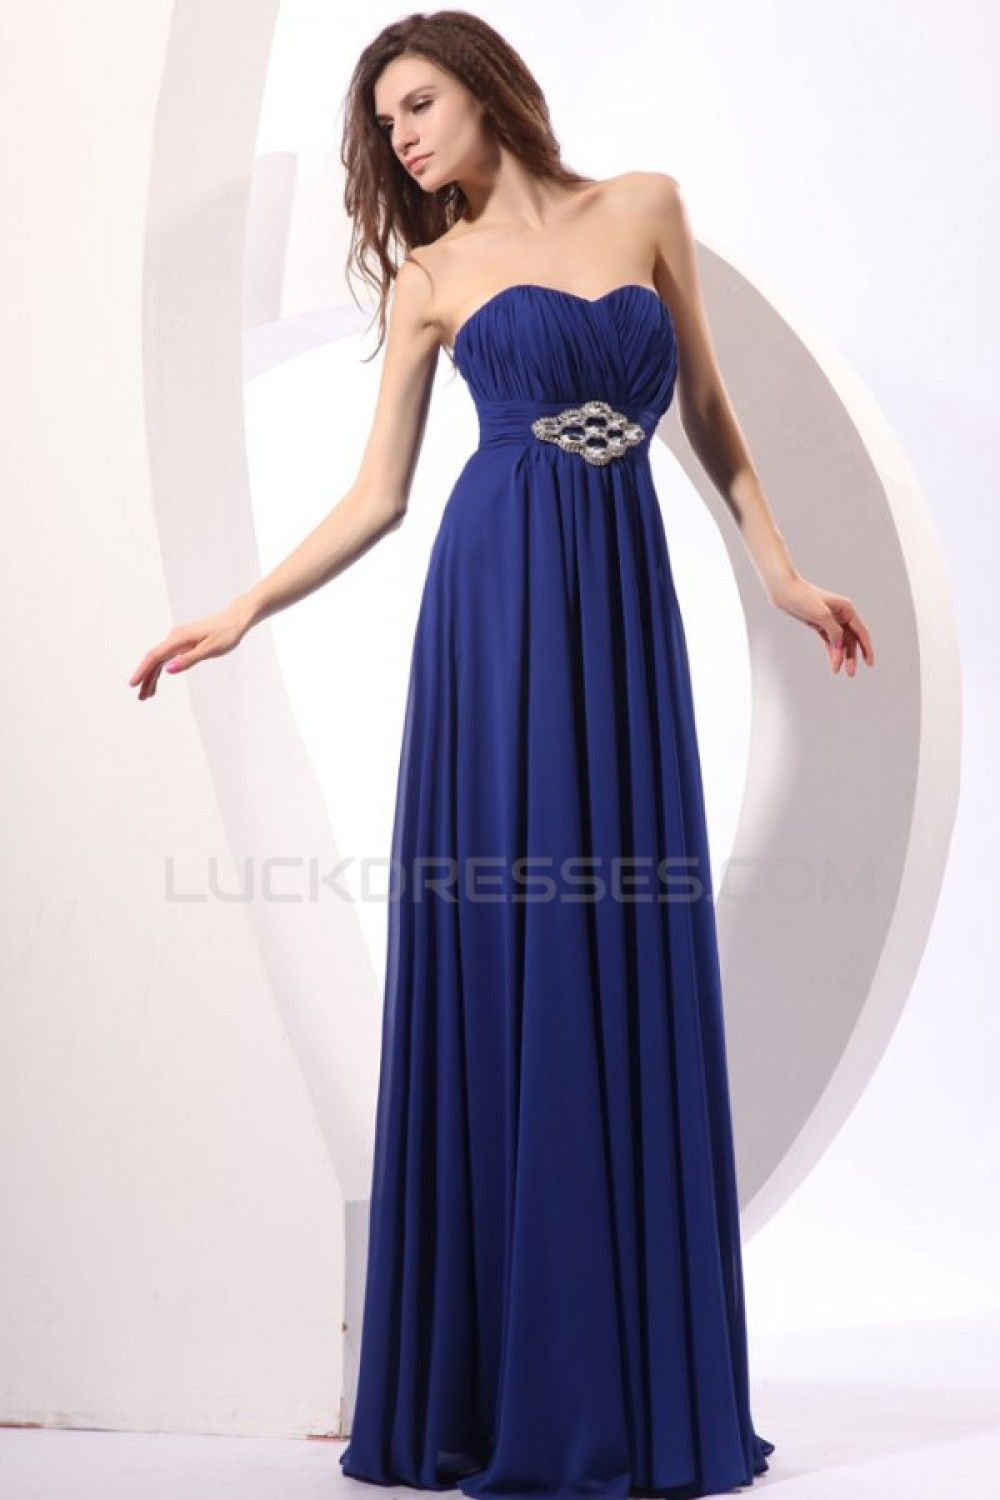 Blue chiffon prom evening formal party dressesmaternity evening long blue chiffon prom evening formal party dressesmaternity evening dresses ed010045 ombrellifo Gallery